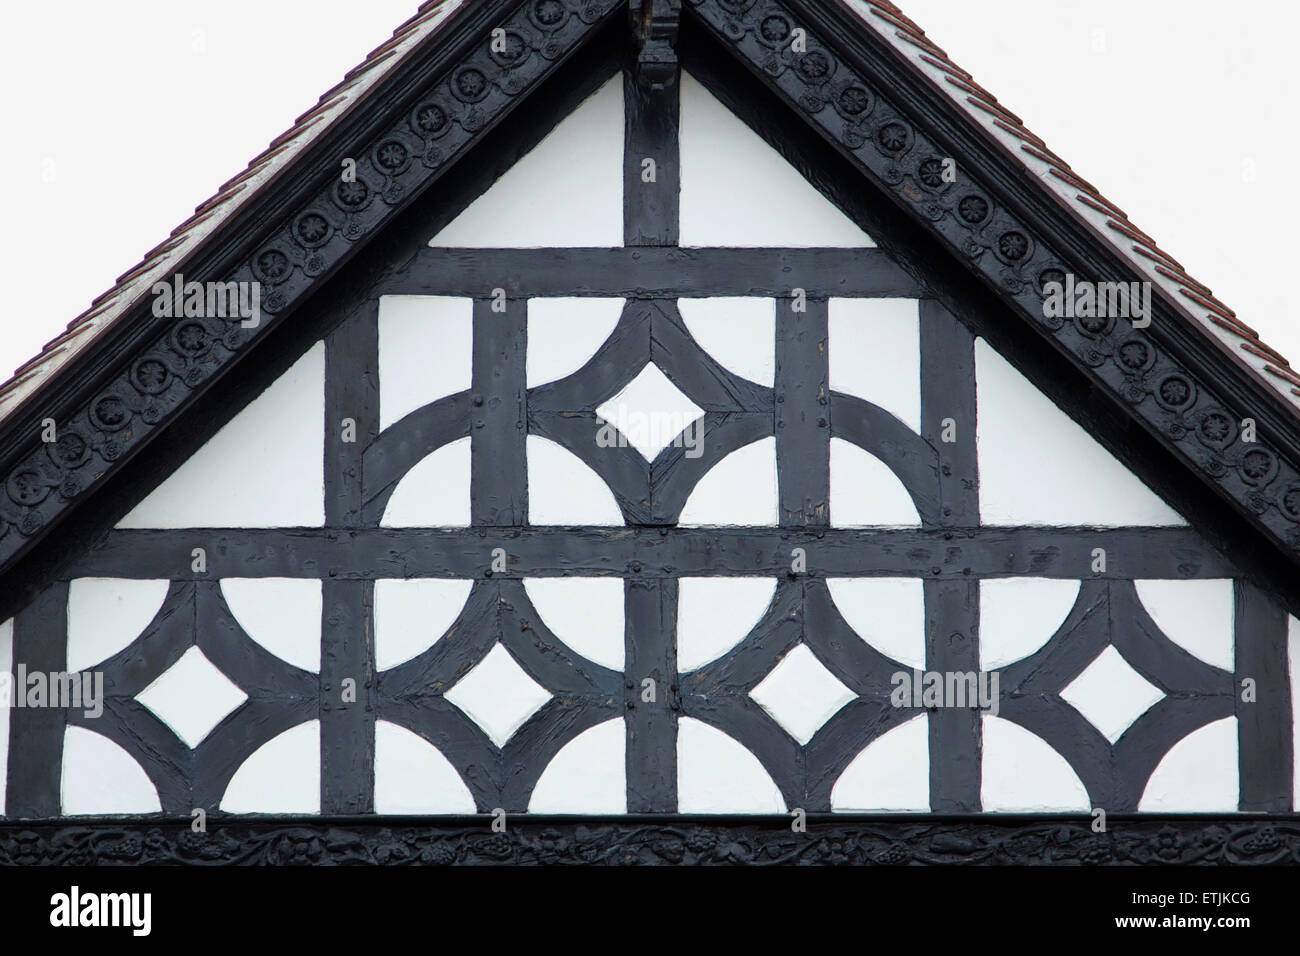 Decorative gable end of Tudor house in Chester, England - Stock Image